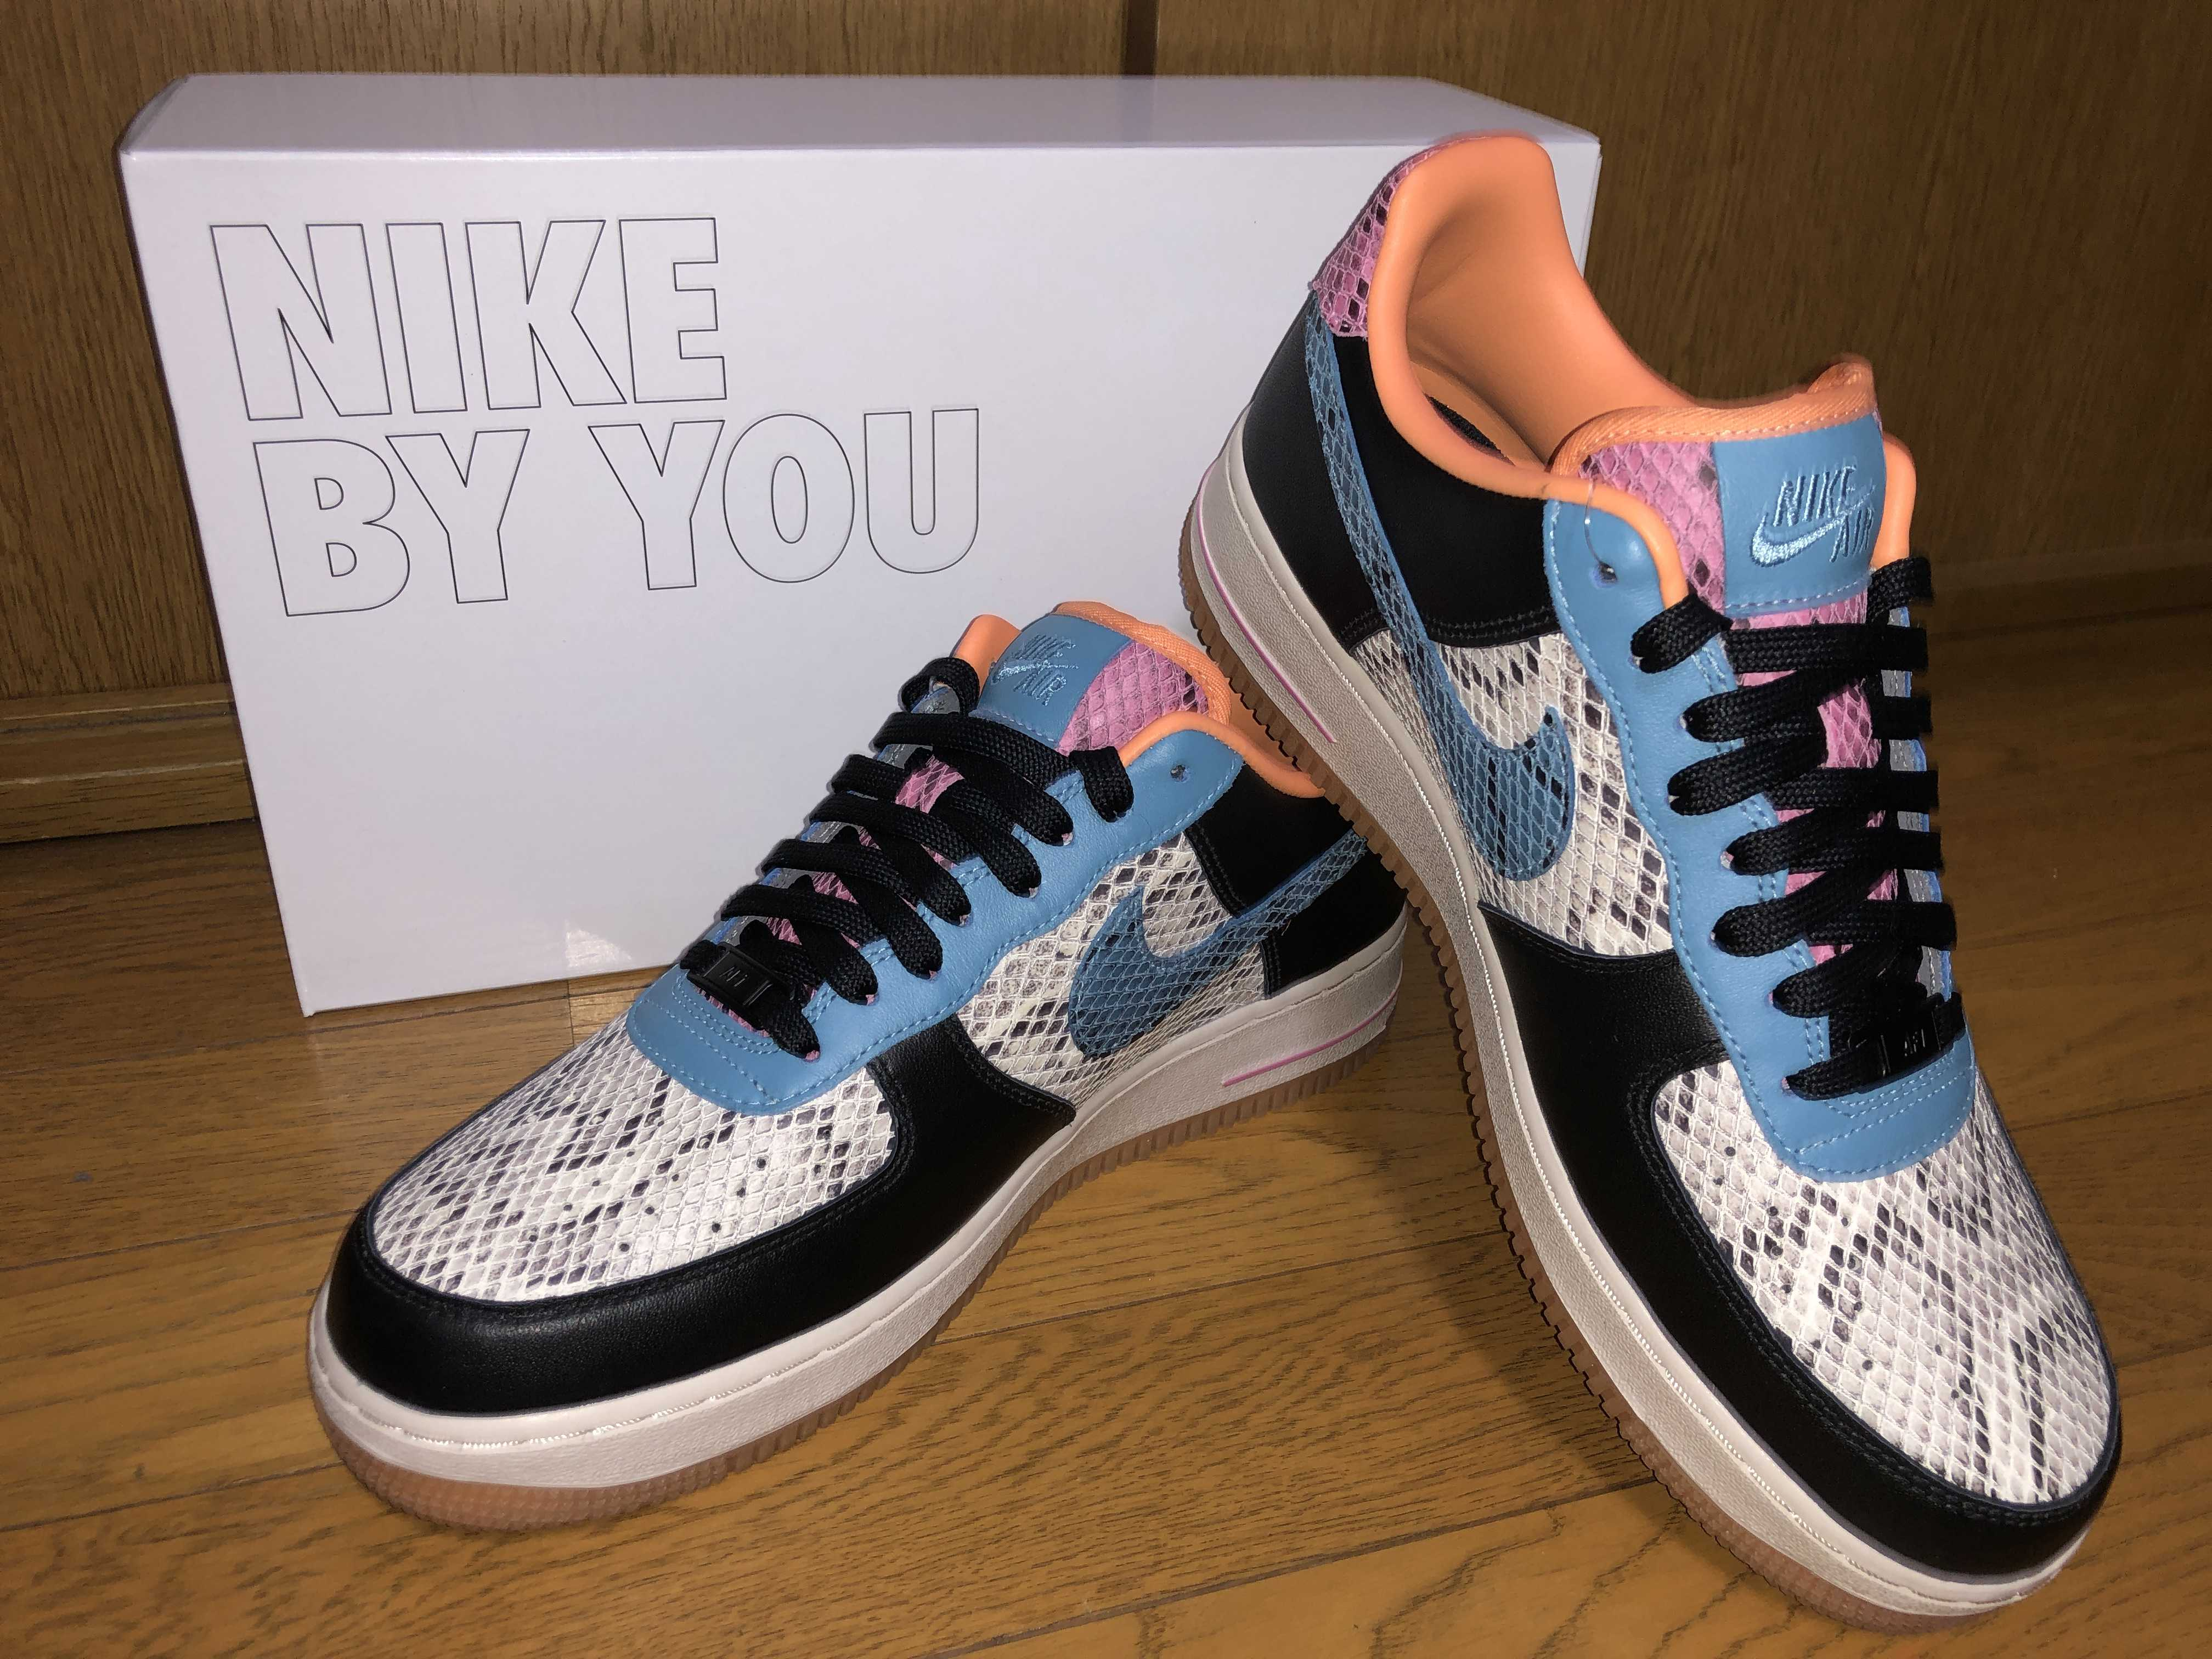 AIR FORCE 1 by you